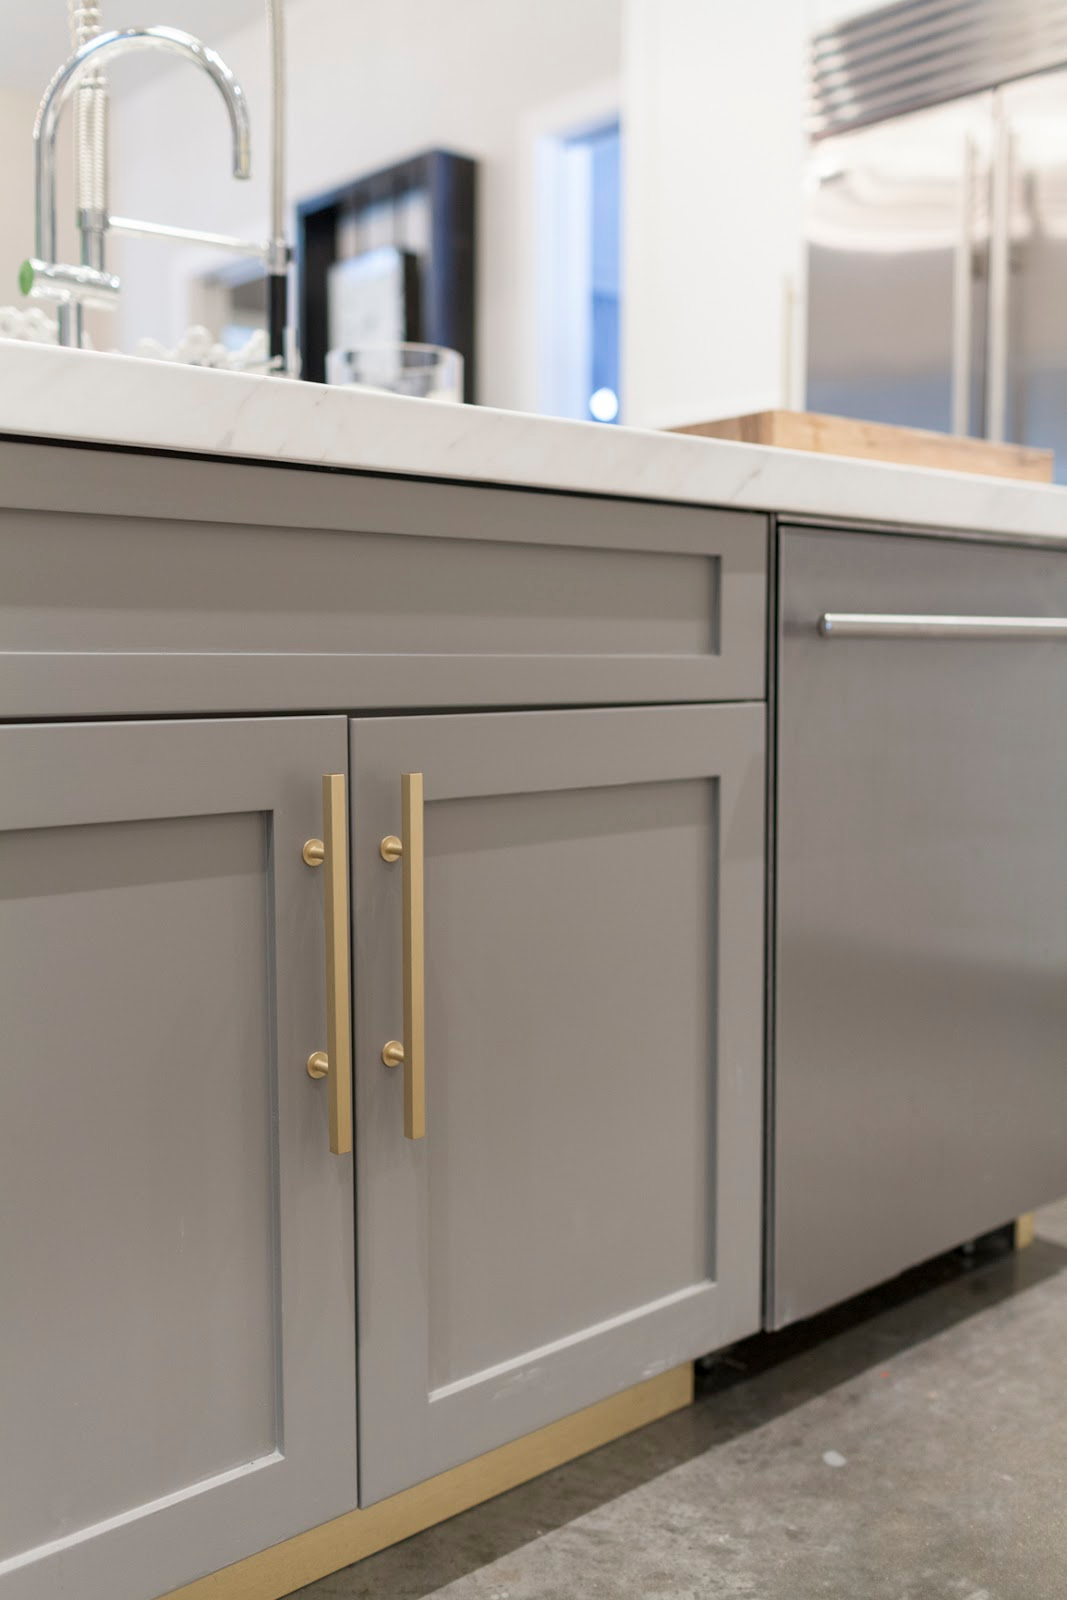 Gray and gold modern kitchen cabinets by Laura U Interior Design